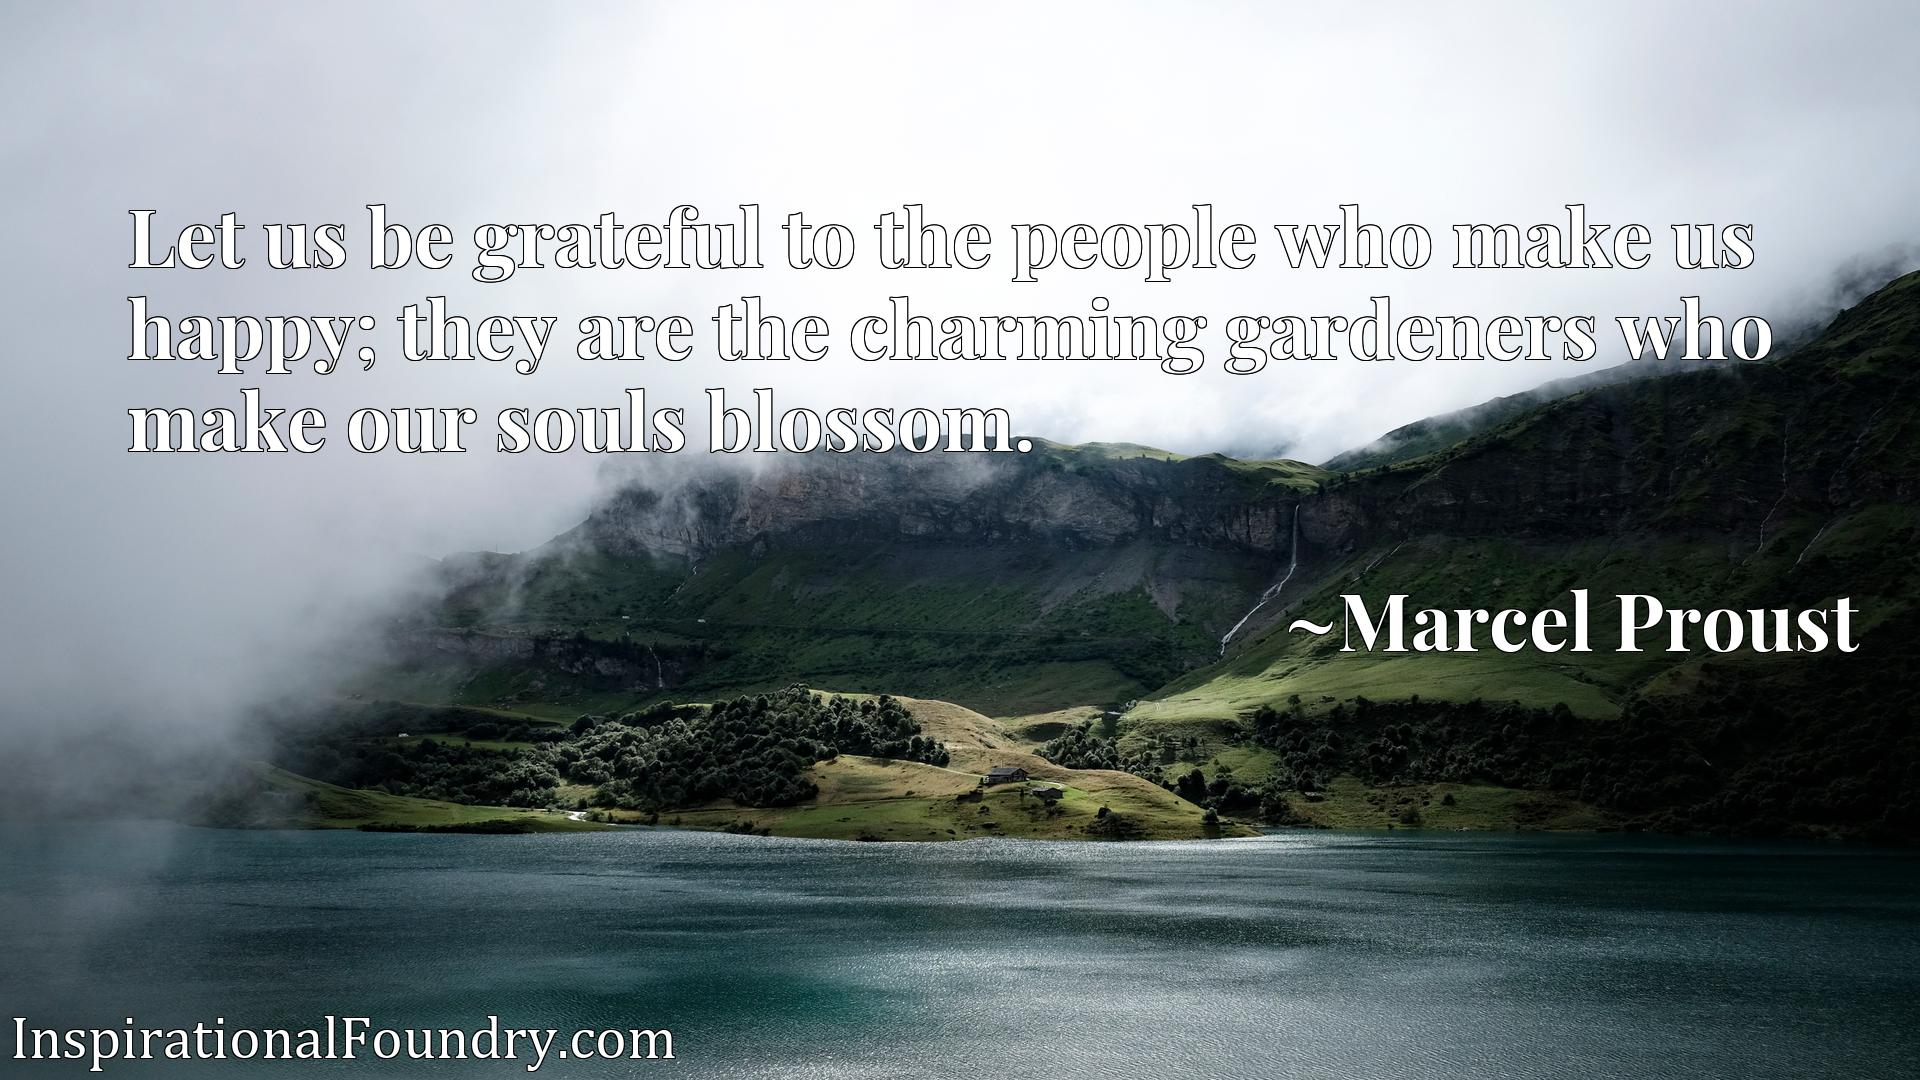 Quote Picture :Let us be grateful to the people who make us happy; they are the charming gardeners who make our souls blossom.